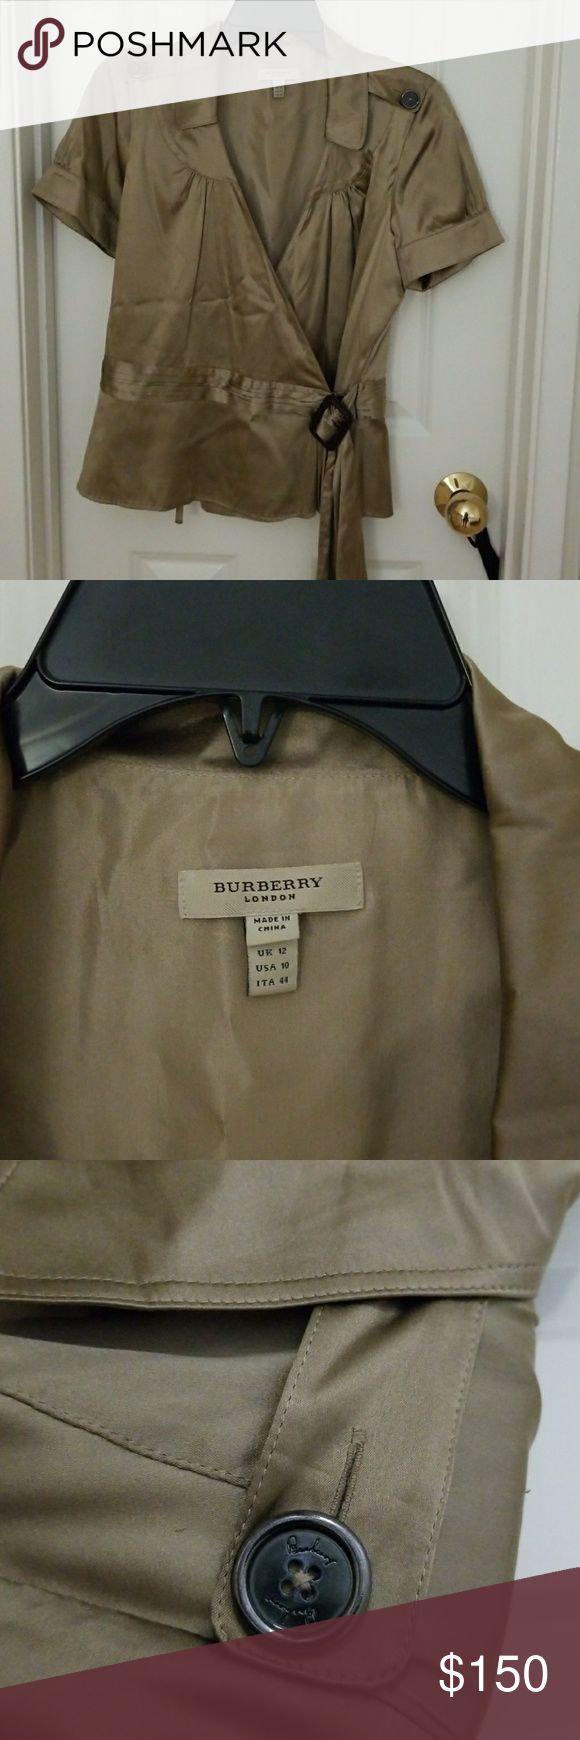 Burberry Blouse NWOT...Never worn. Tan/ taupe silk blouse. Short sleeves, rouching on sleeves and chest. Wrap style waist with leather buckle. Bought it from Nordstrom discounted so am offering it at a deep discount. Price is of a similar item. Burberry Tops Blouses